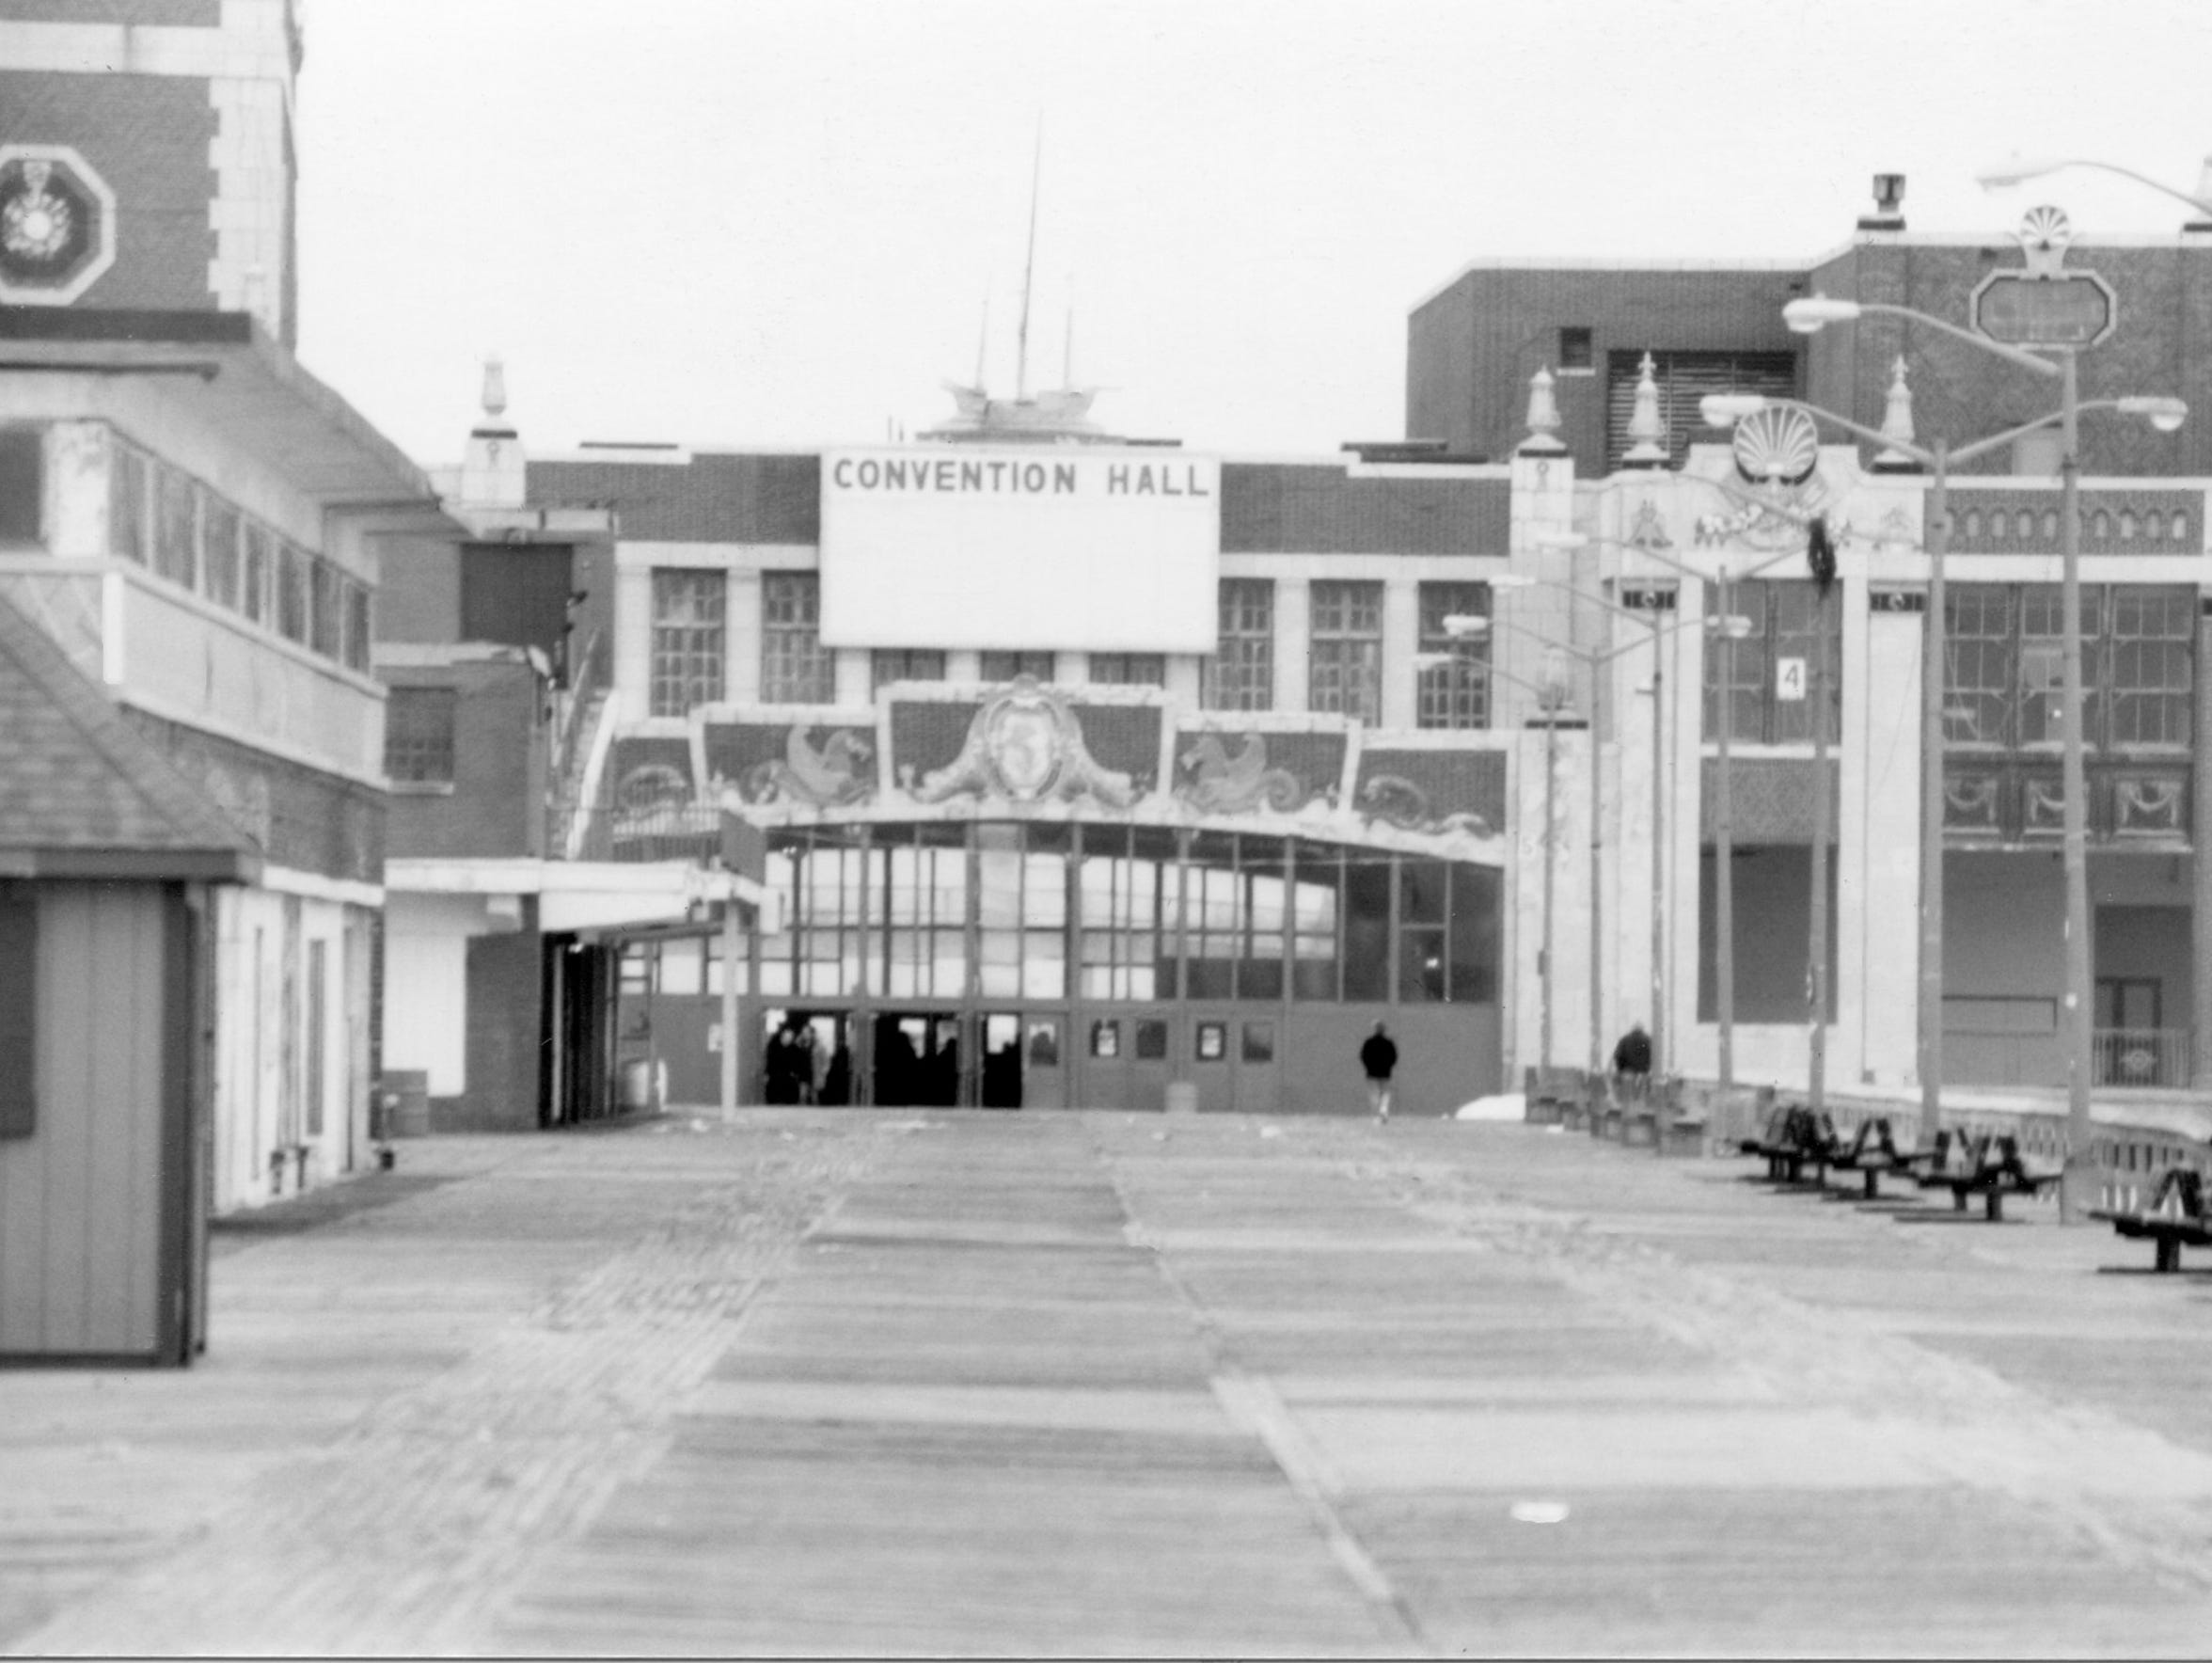 A view from Asbury Park Convention Hall in 1996 along